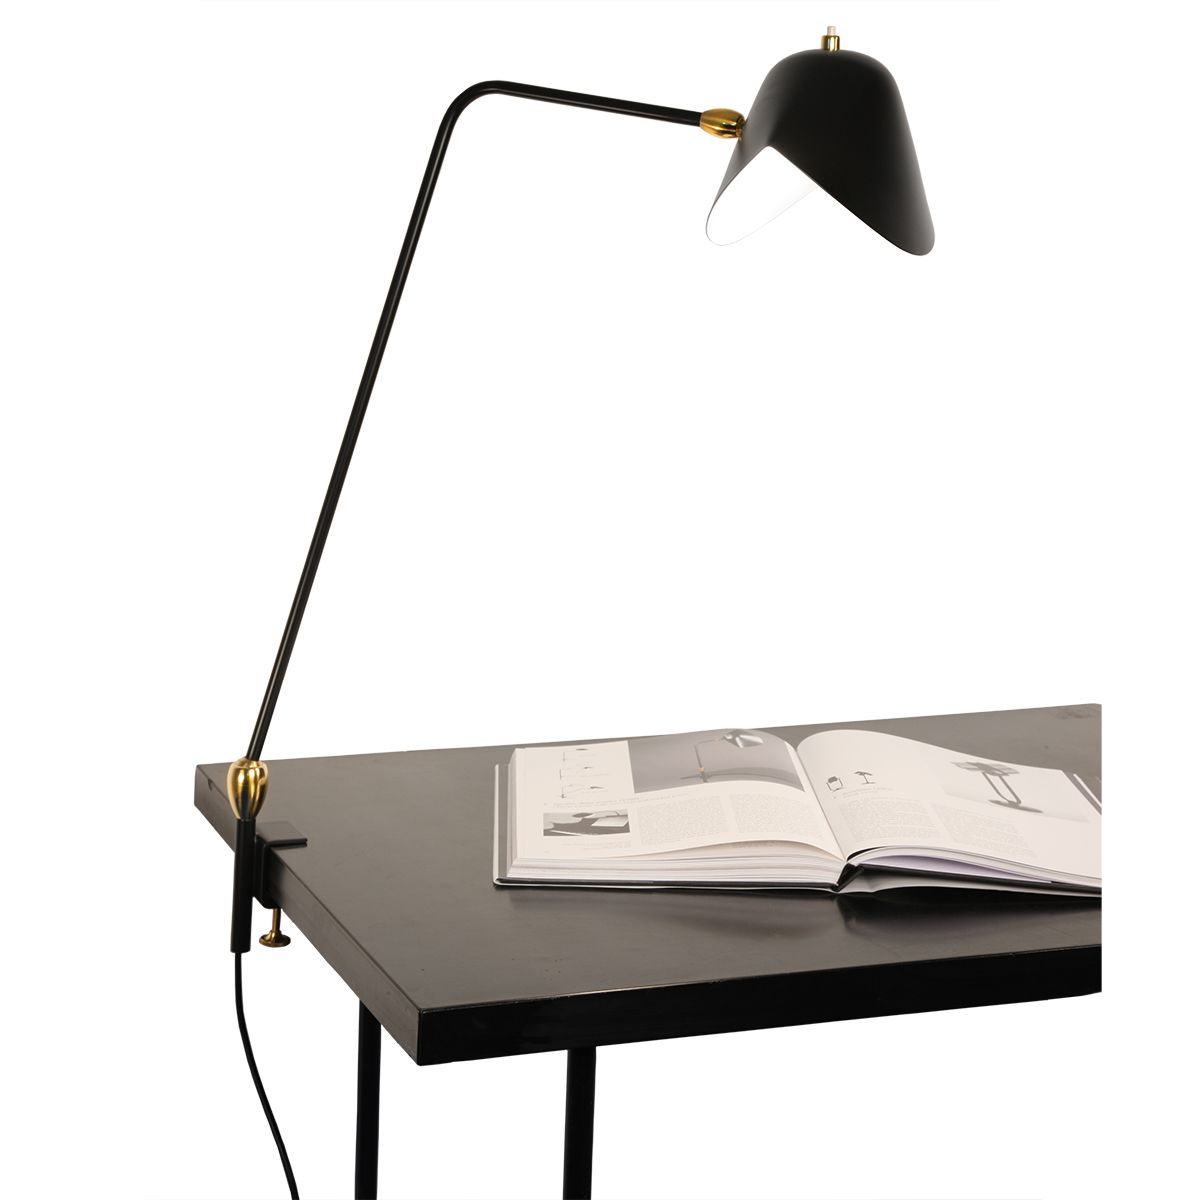 Serge Mouille Agrafee Double Pivot Clamp Lamp